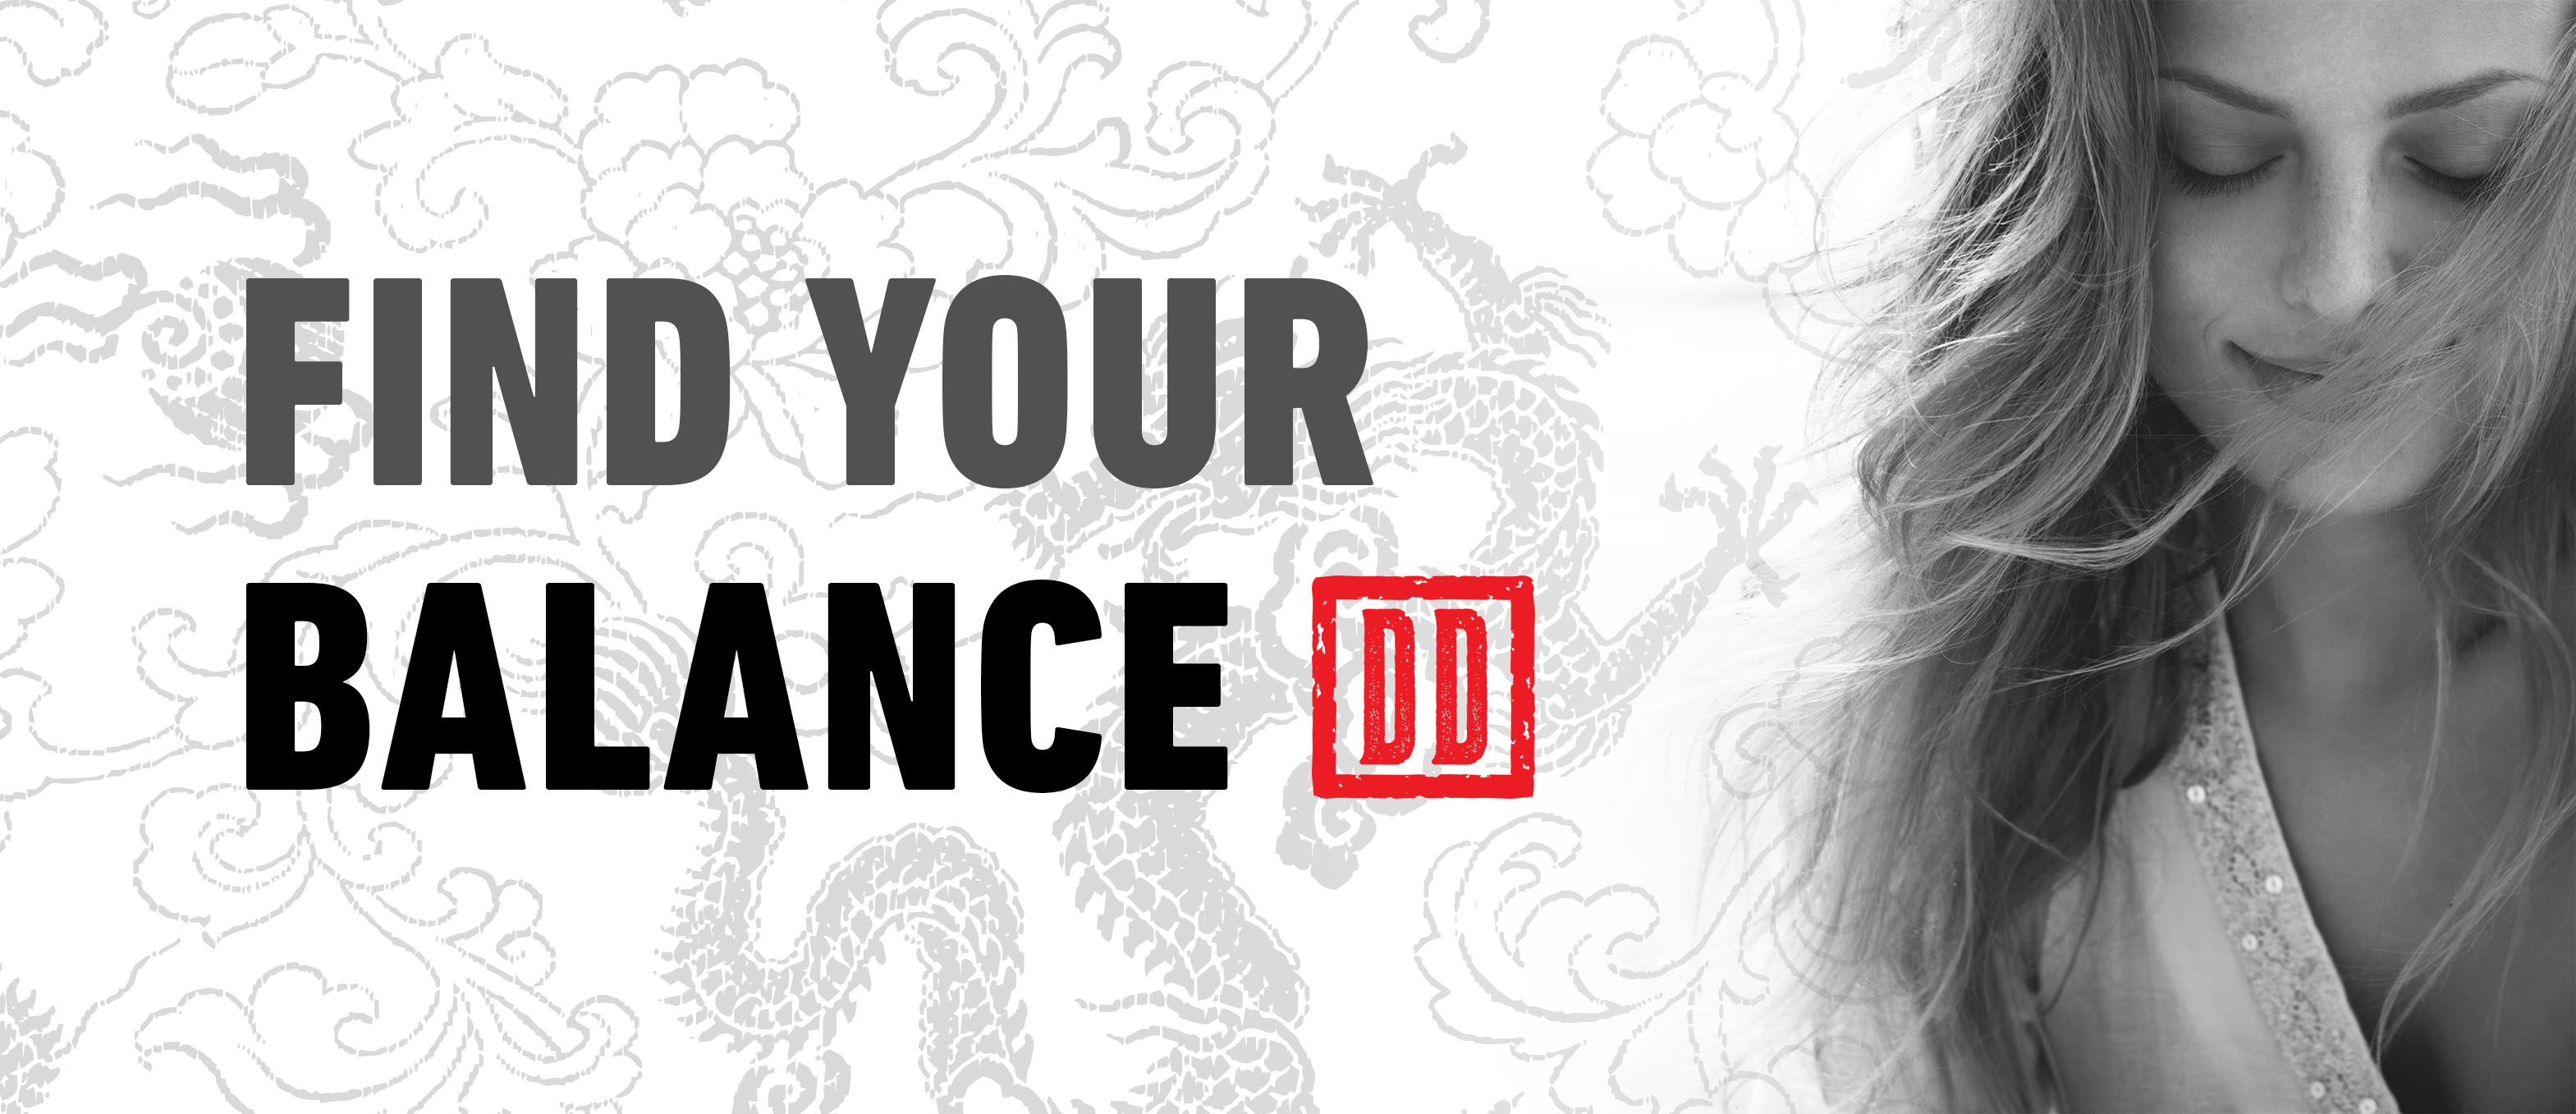 Find your balance – DD